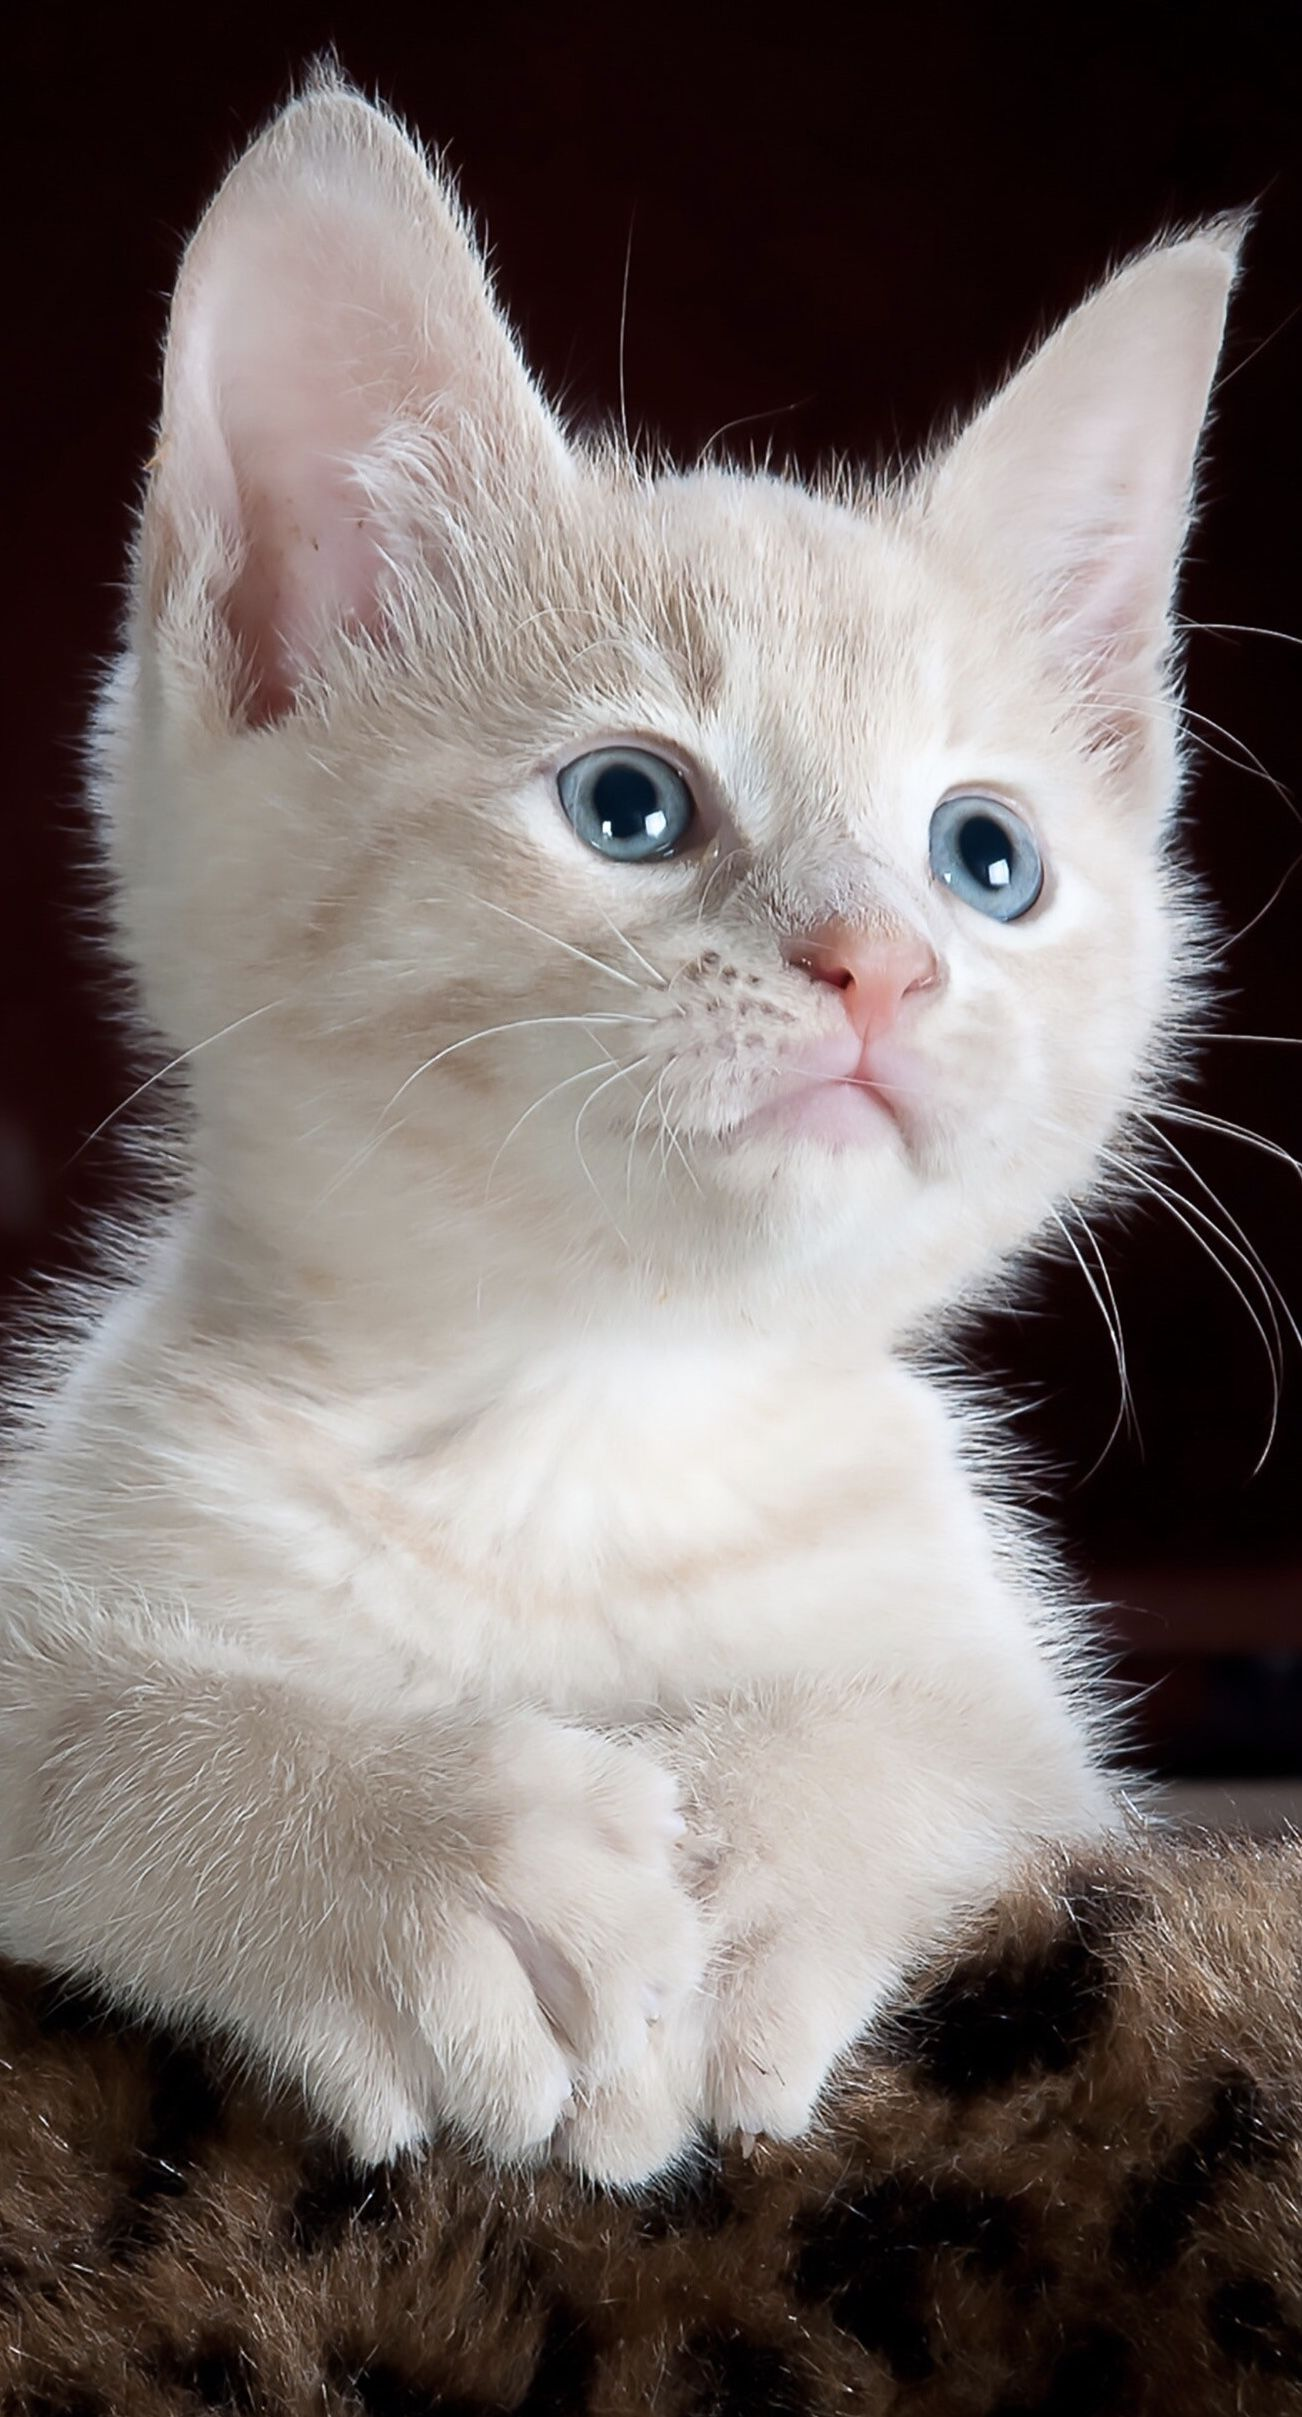 Life Isn T All Rainbows And Kittens Fiction Shouldn T Be Either Read Jeff Berney S Latest Blog Post About Why He Hates The Holl In 2020 Cat Care Pets Best Cat Breeds